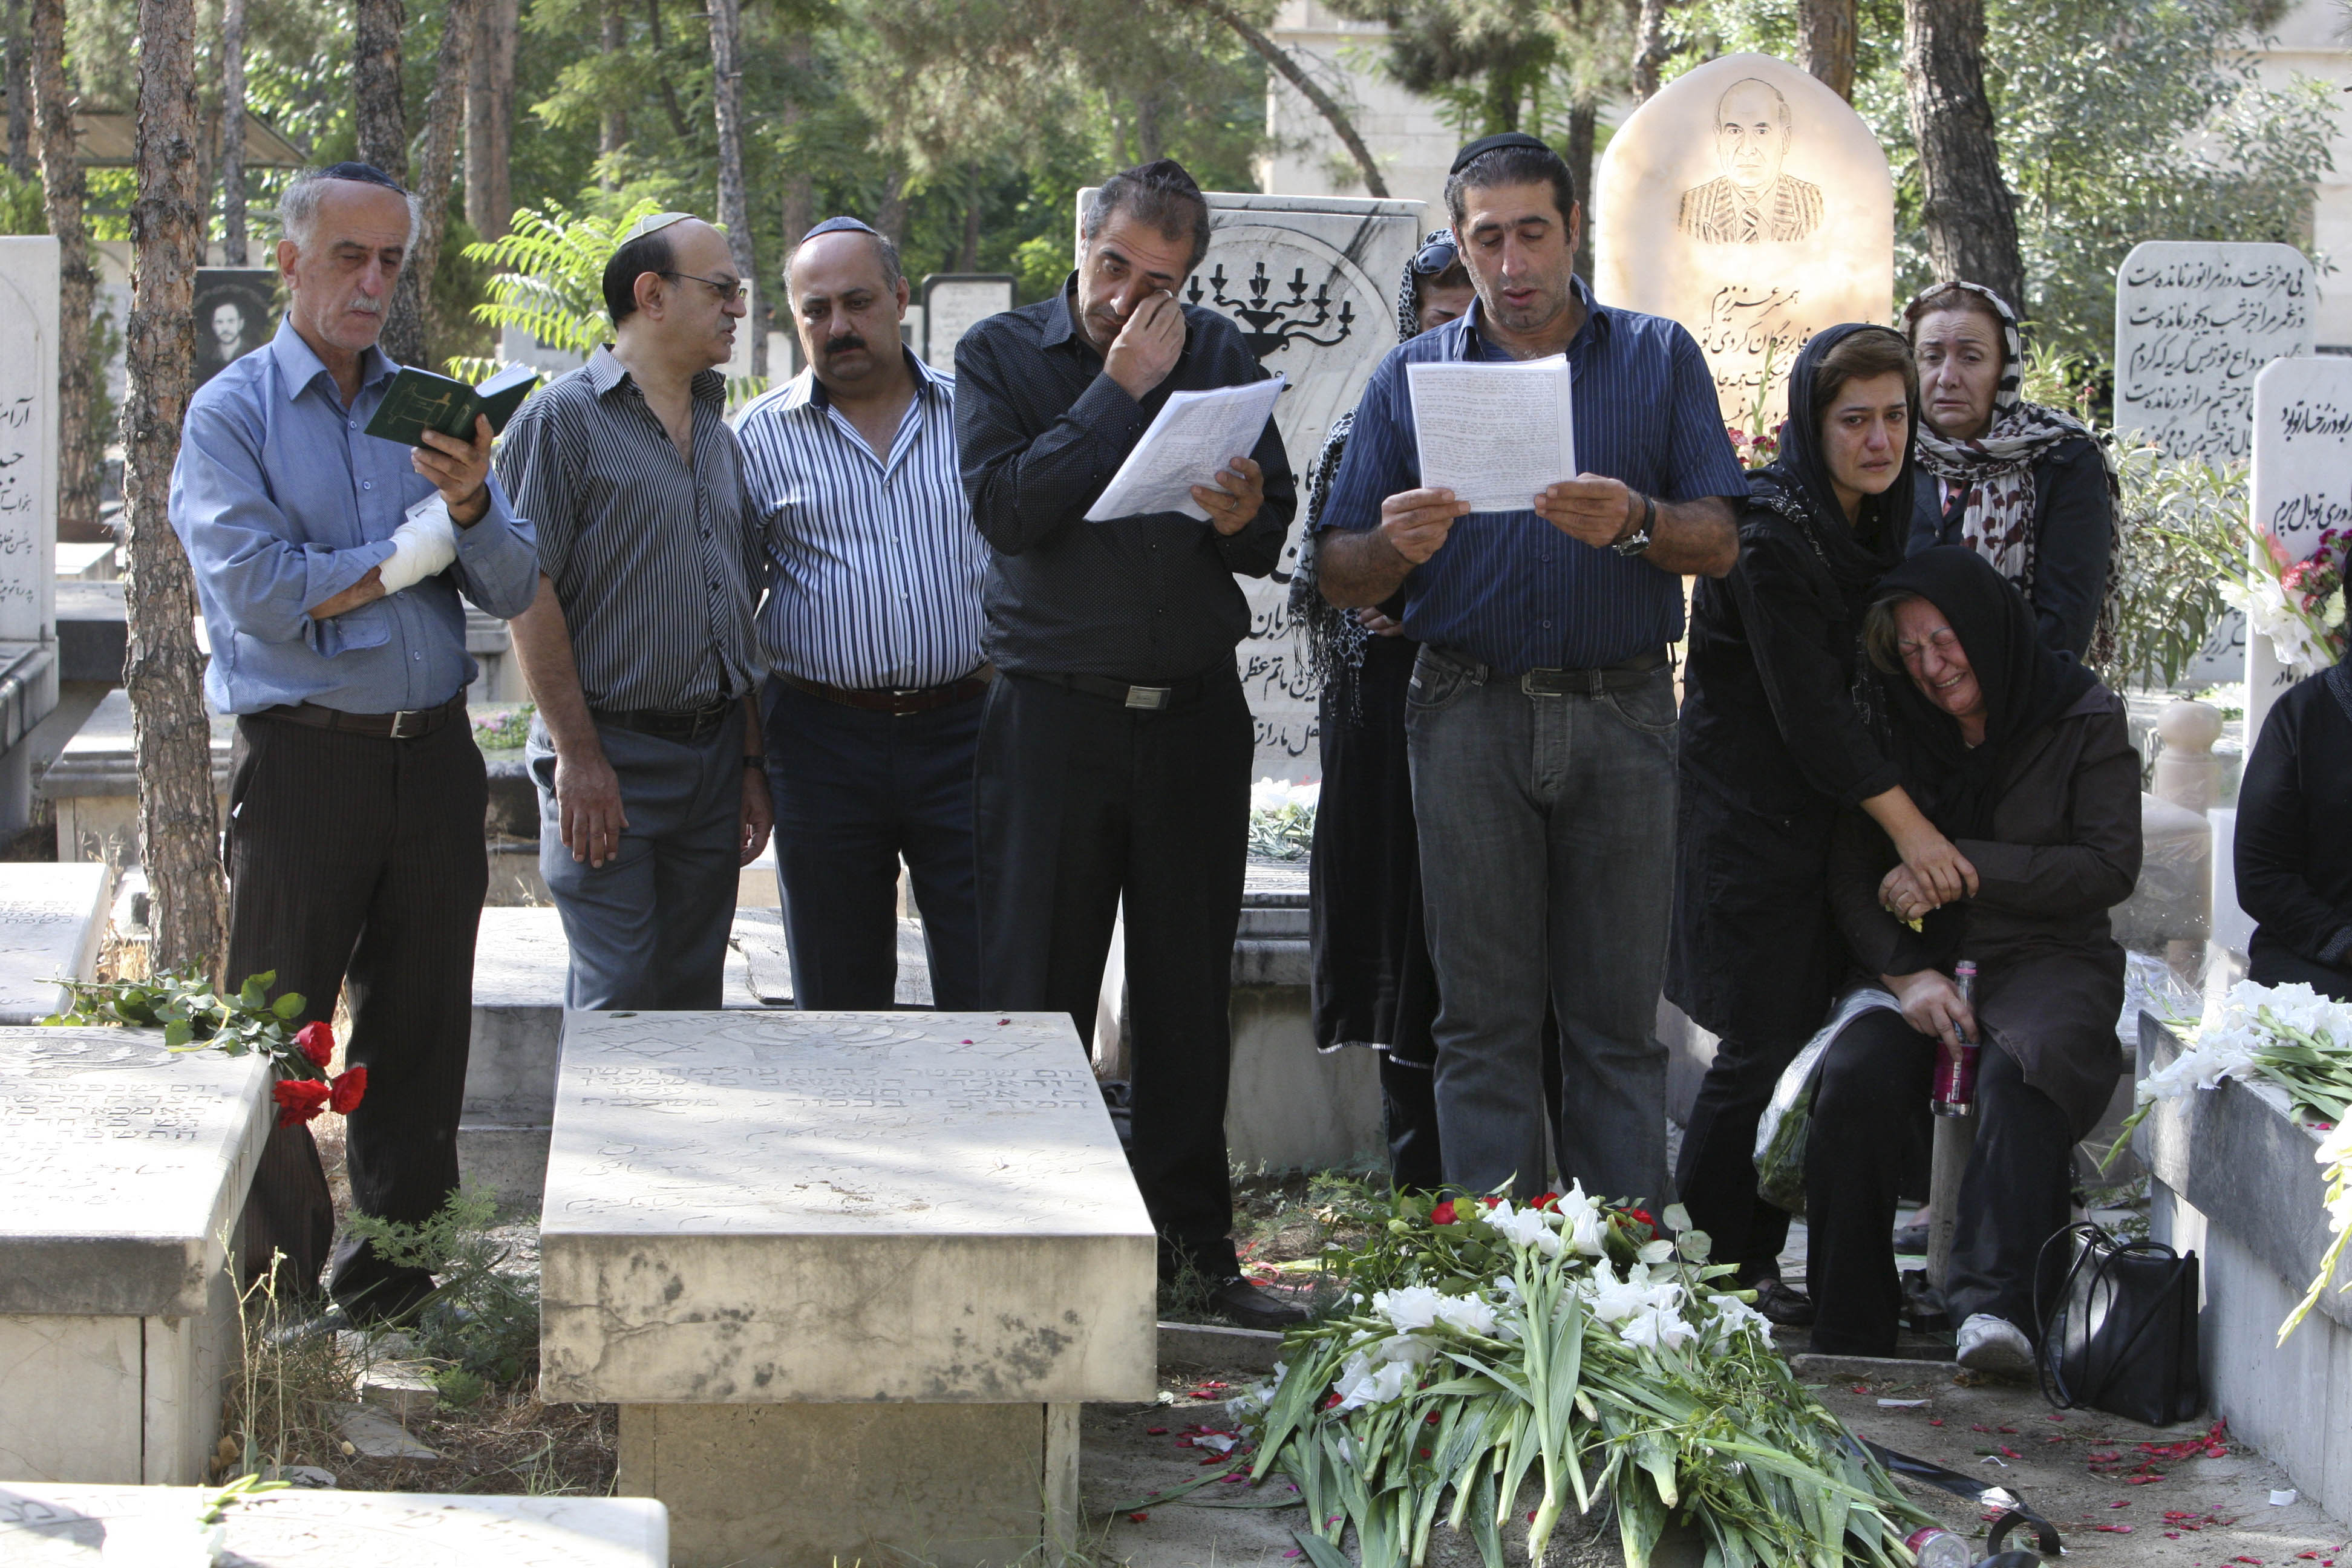 Tehran iran in photos annual memorial day held at iranian jewish iranian jews pray and mourn at the grave of their loved one covered with flowers izmirmasajfo Gallery